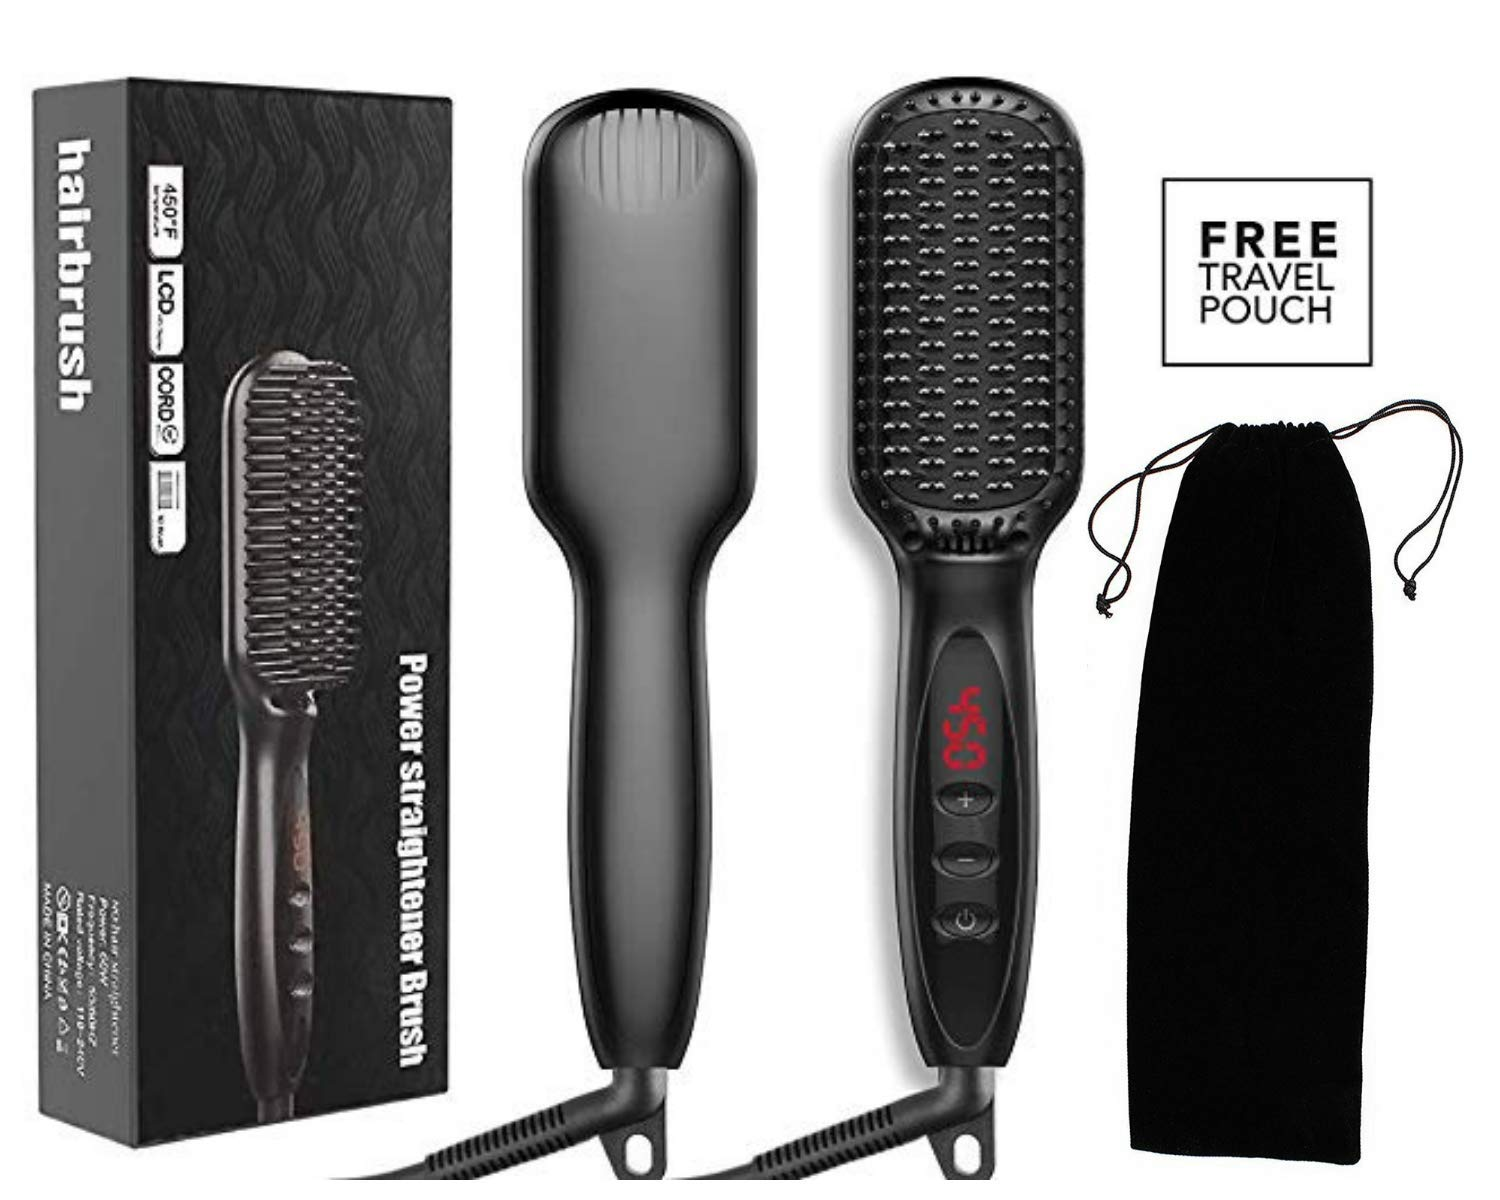 Hair Straightener Brush, TGB Ionic Hair Straightening Brush With Fast MCH Ceramic Heating, Anti-Scald, Auto Temperature Lock and Auto-Off Function, Portable Straightening Comb for Home and travel Hair Brush.